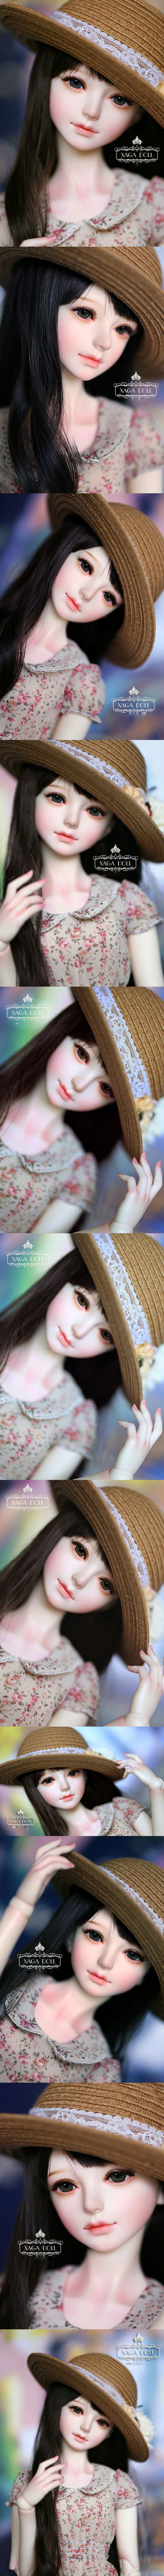 BJD Elsie Girl 60cm Ball-Jointed Doll